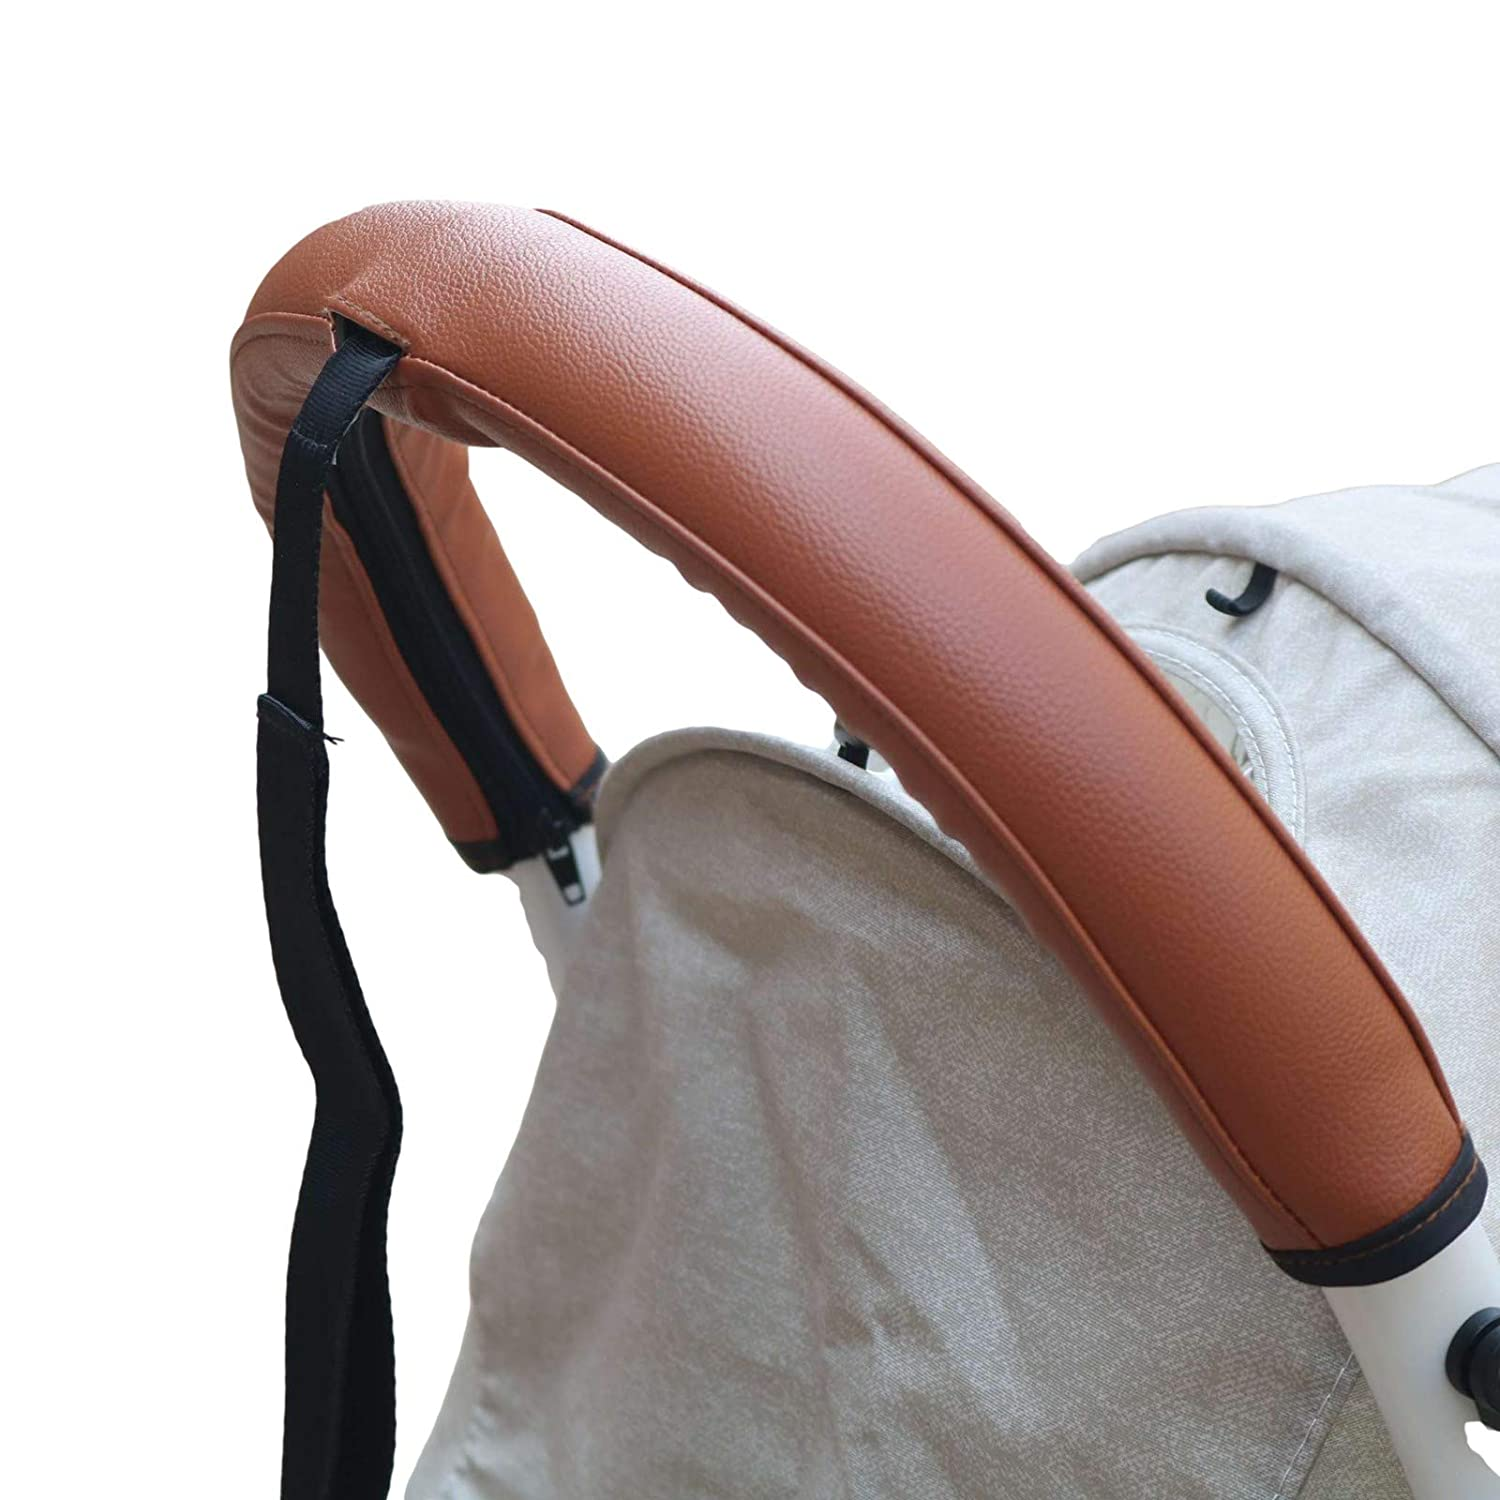 Leather Handle Sleeve Cover Compatible for Babyzen yoyo 2,Stroller Accessories,PU Sleeve Protect Case for YOYO+ Armrest Bumper (No Wrist Strap) (Brown)